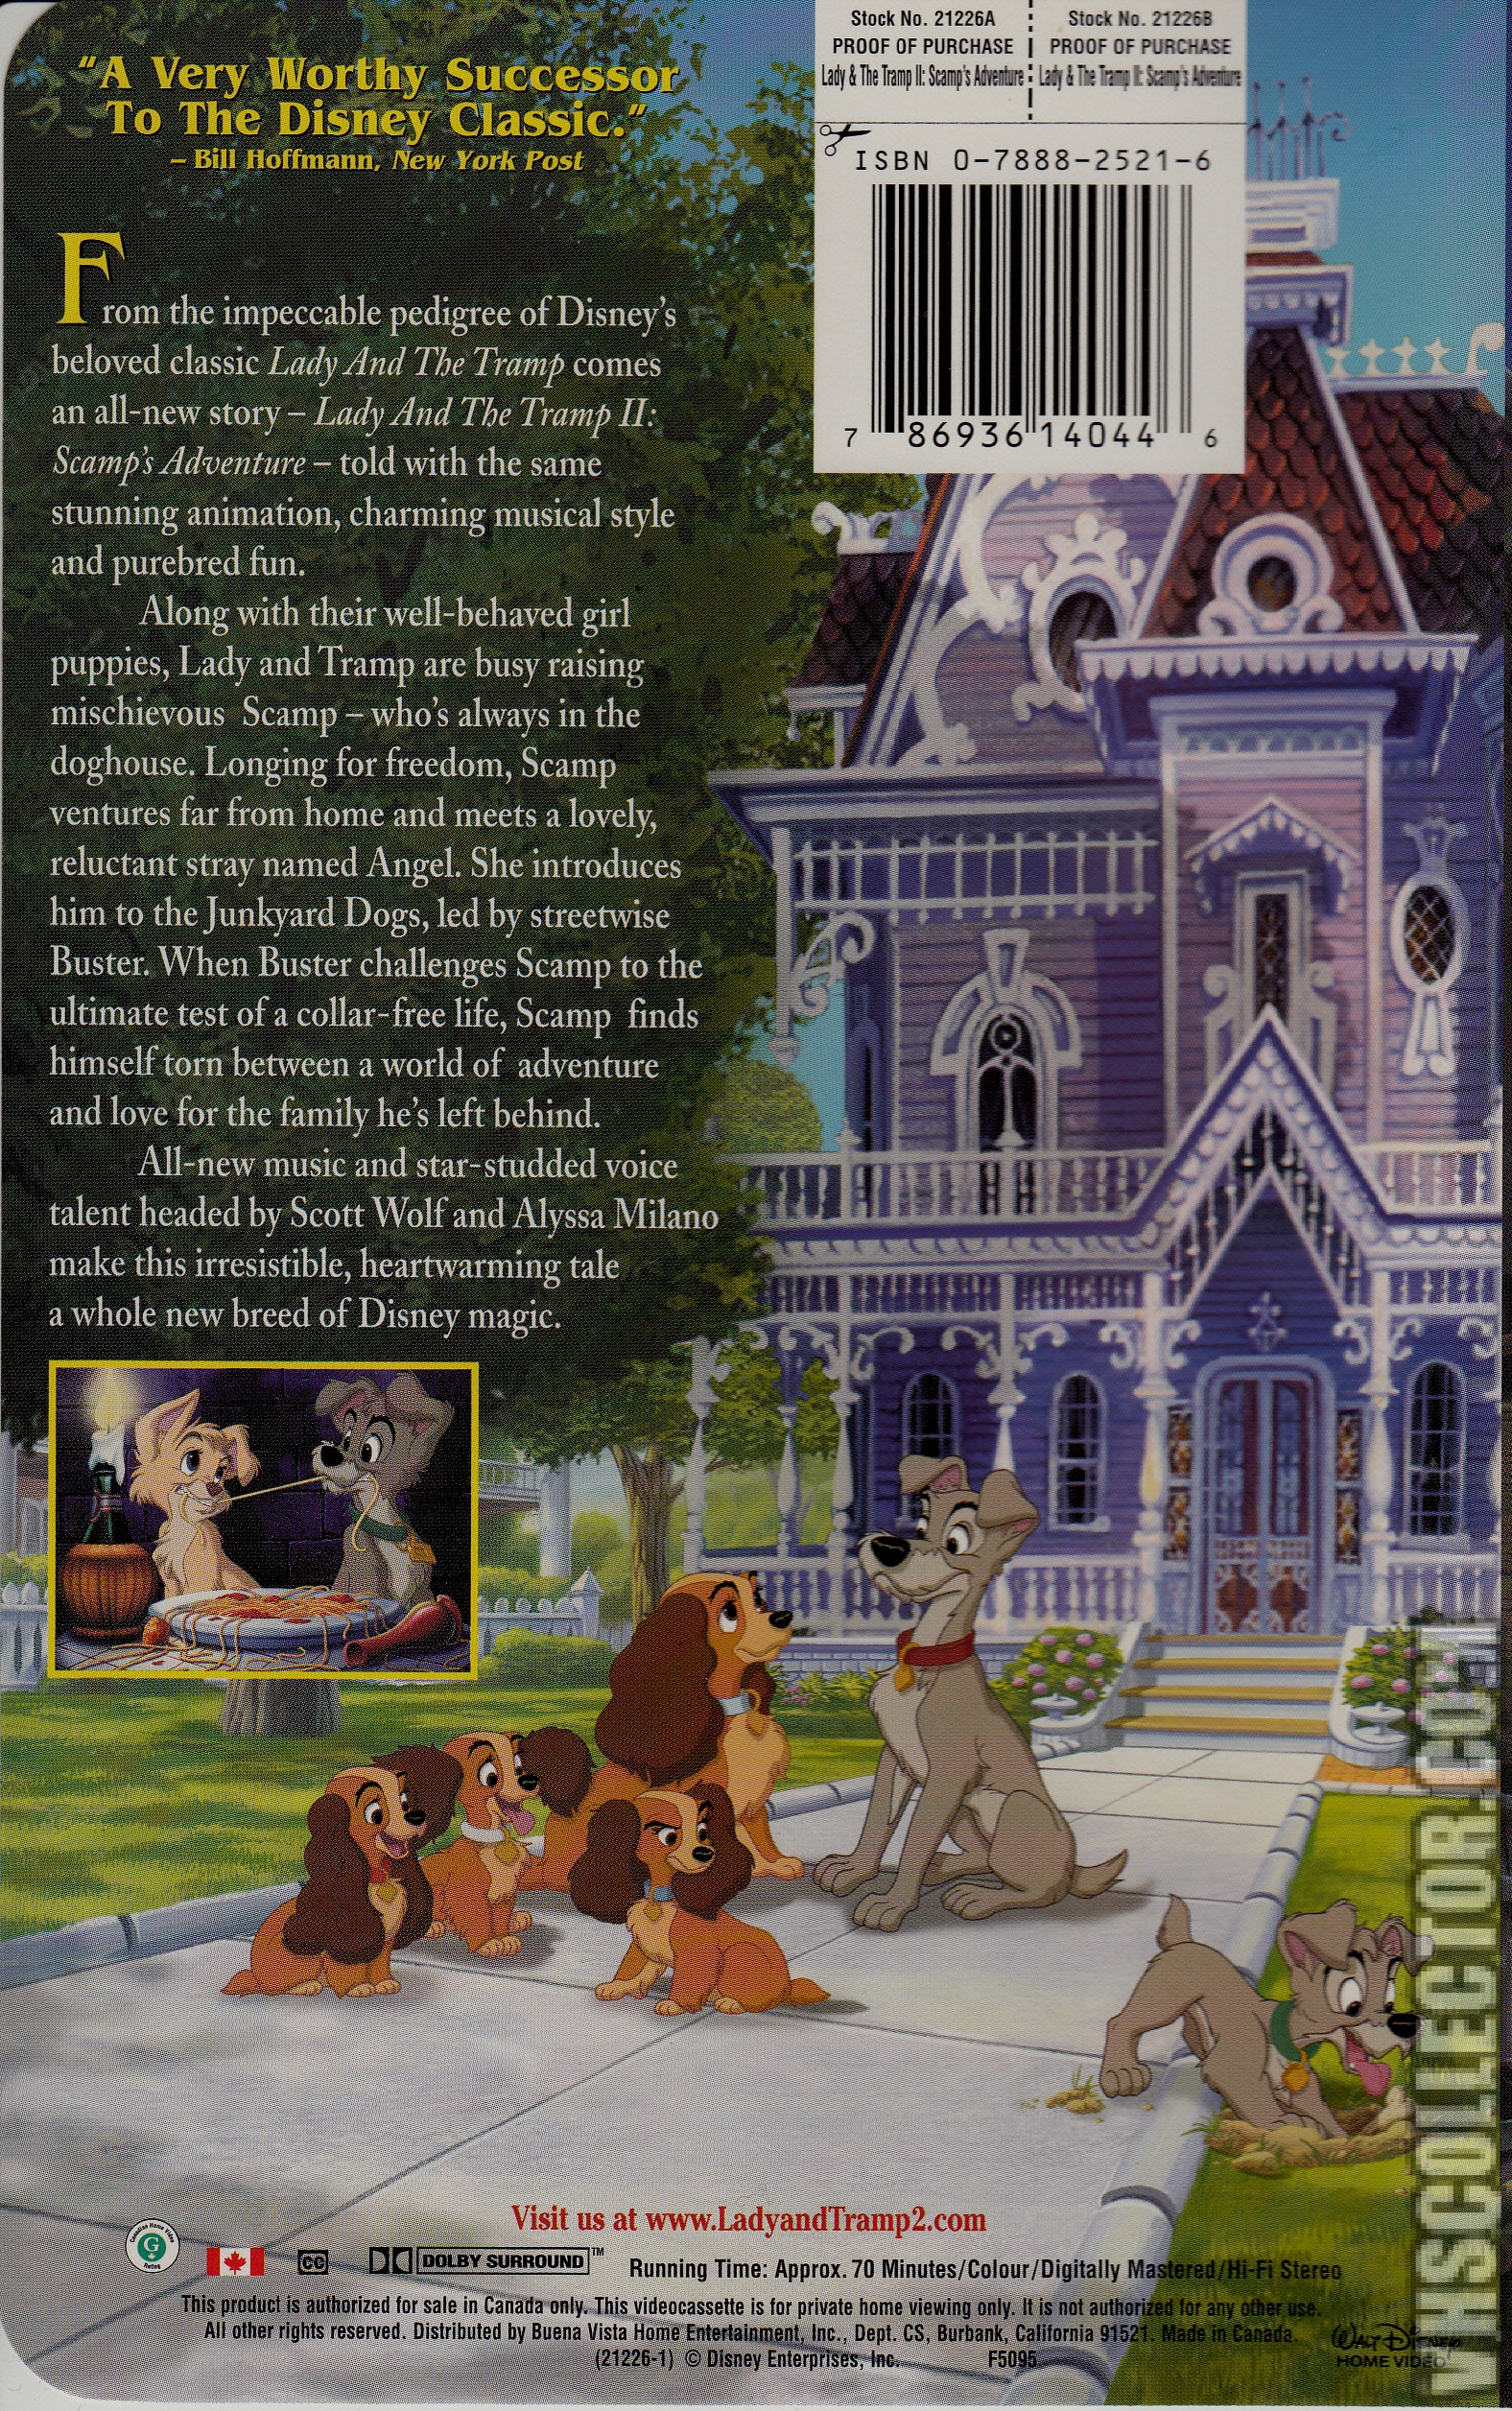 Lady And The Tramp Ii Scamp S Adventure Vhscollector Com